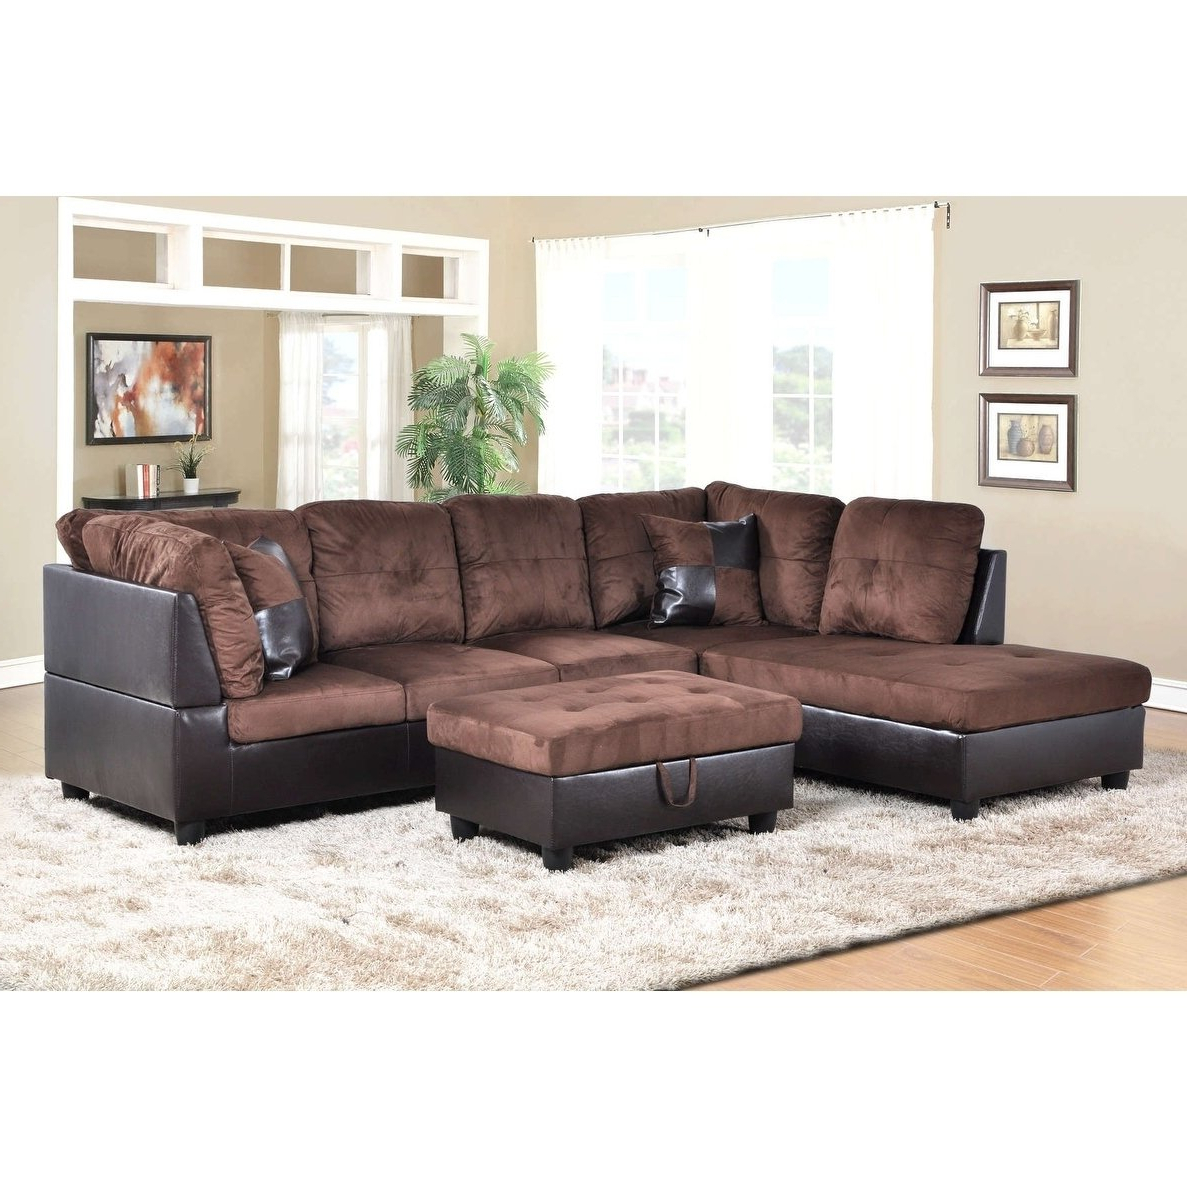 2019 Karen 3 Piece Sectionals Throughout Shop Golden Coast Furniture 3 Piece Microfiber Leather Sofa (View 1 of 20)